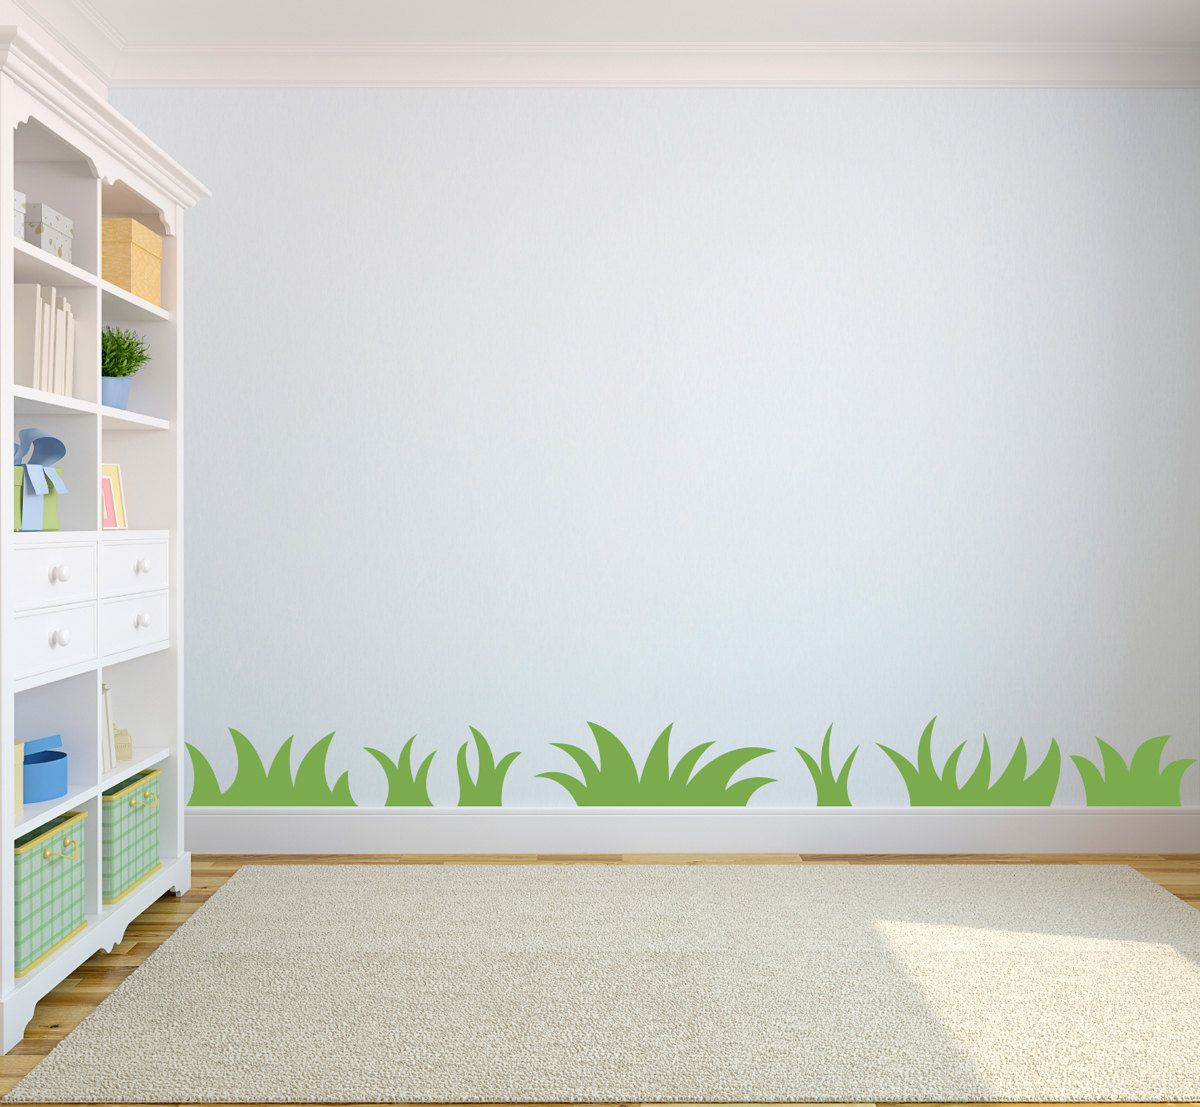 Bedroom wall decoration for kids - Grass Wall Decal Nature Wall Art For Kids Bedroom Set Of 7 Grass Patches Playroom Decor